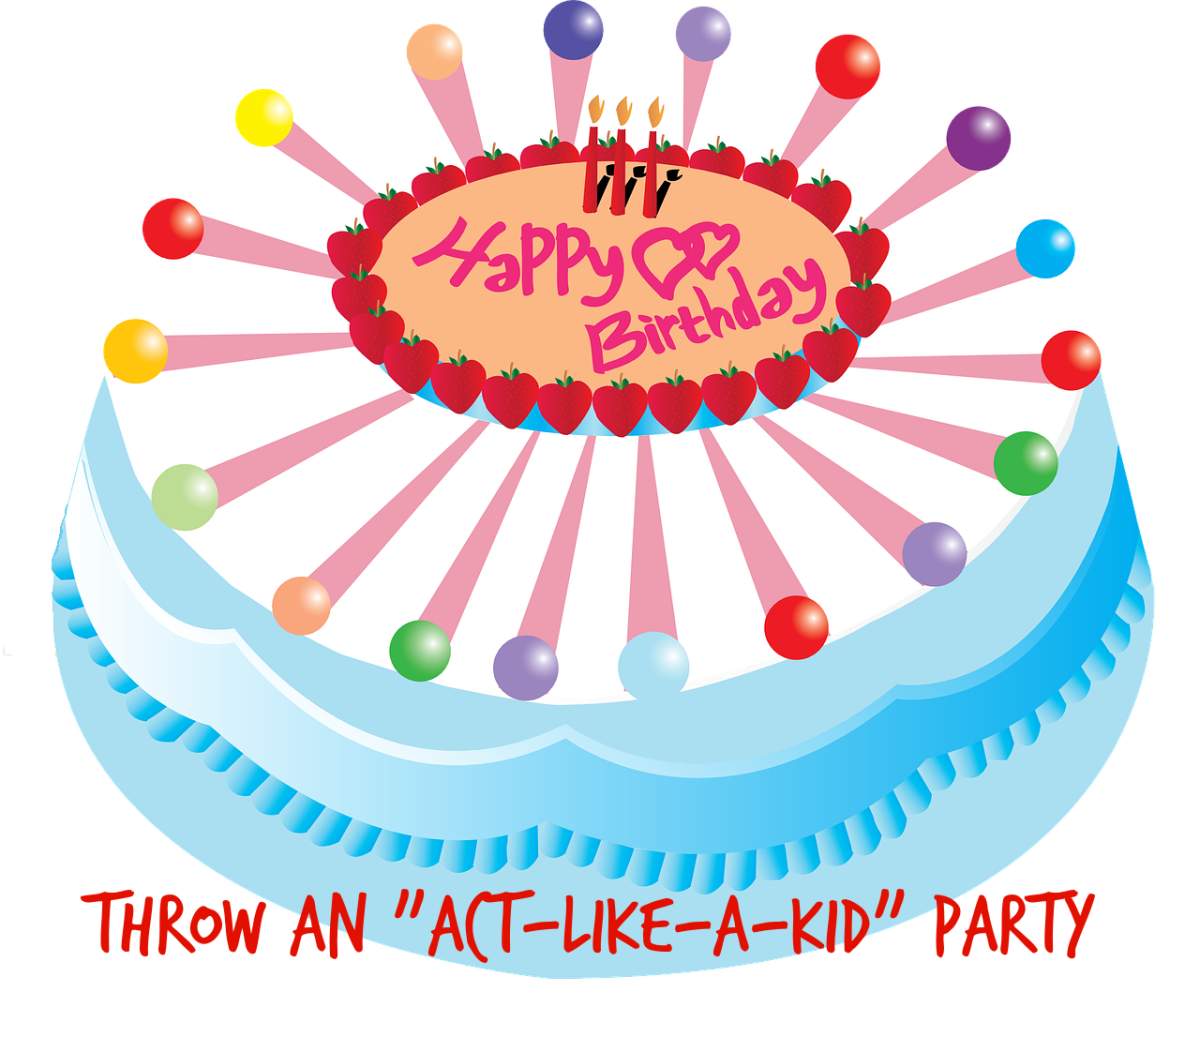 Celebrate those milestone birthdays with an act-like-a-kid day.